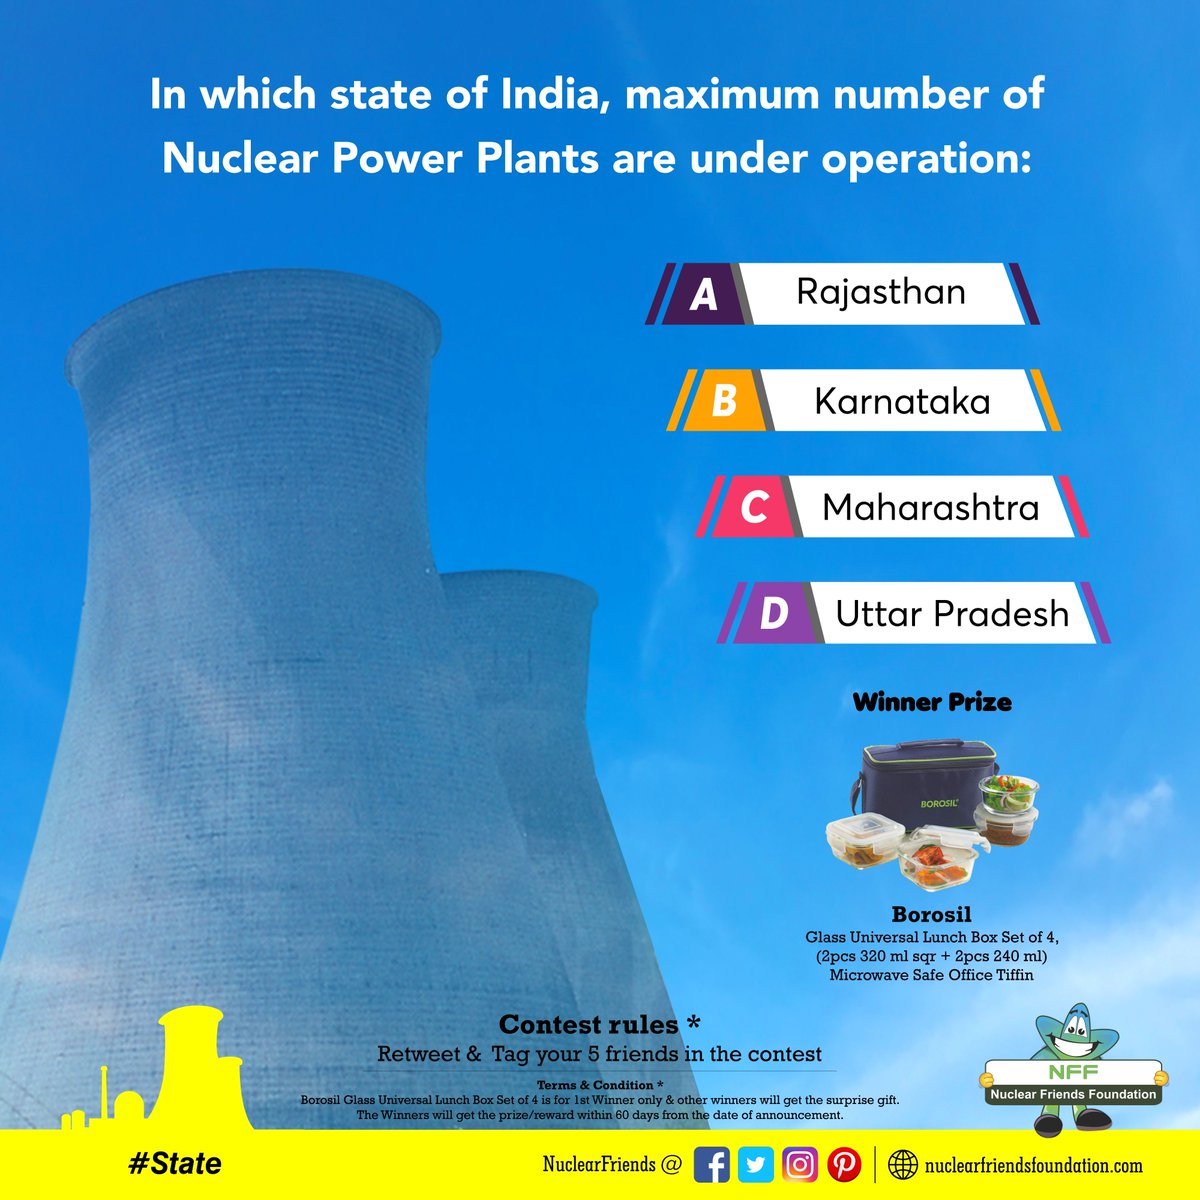 #ContestAlert Answer this simple question and get a chance to win #State contest.  Reach us @ http://nuclearfriendsfoundation.com  #Contest #like #RT #comment #chance #Win #prizes #Today #goodluck #giveaway #competition  #ContestEntry #entertowin #giveaways #FridayFeeling @india4contests